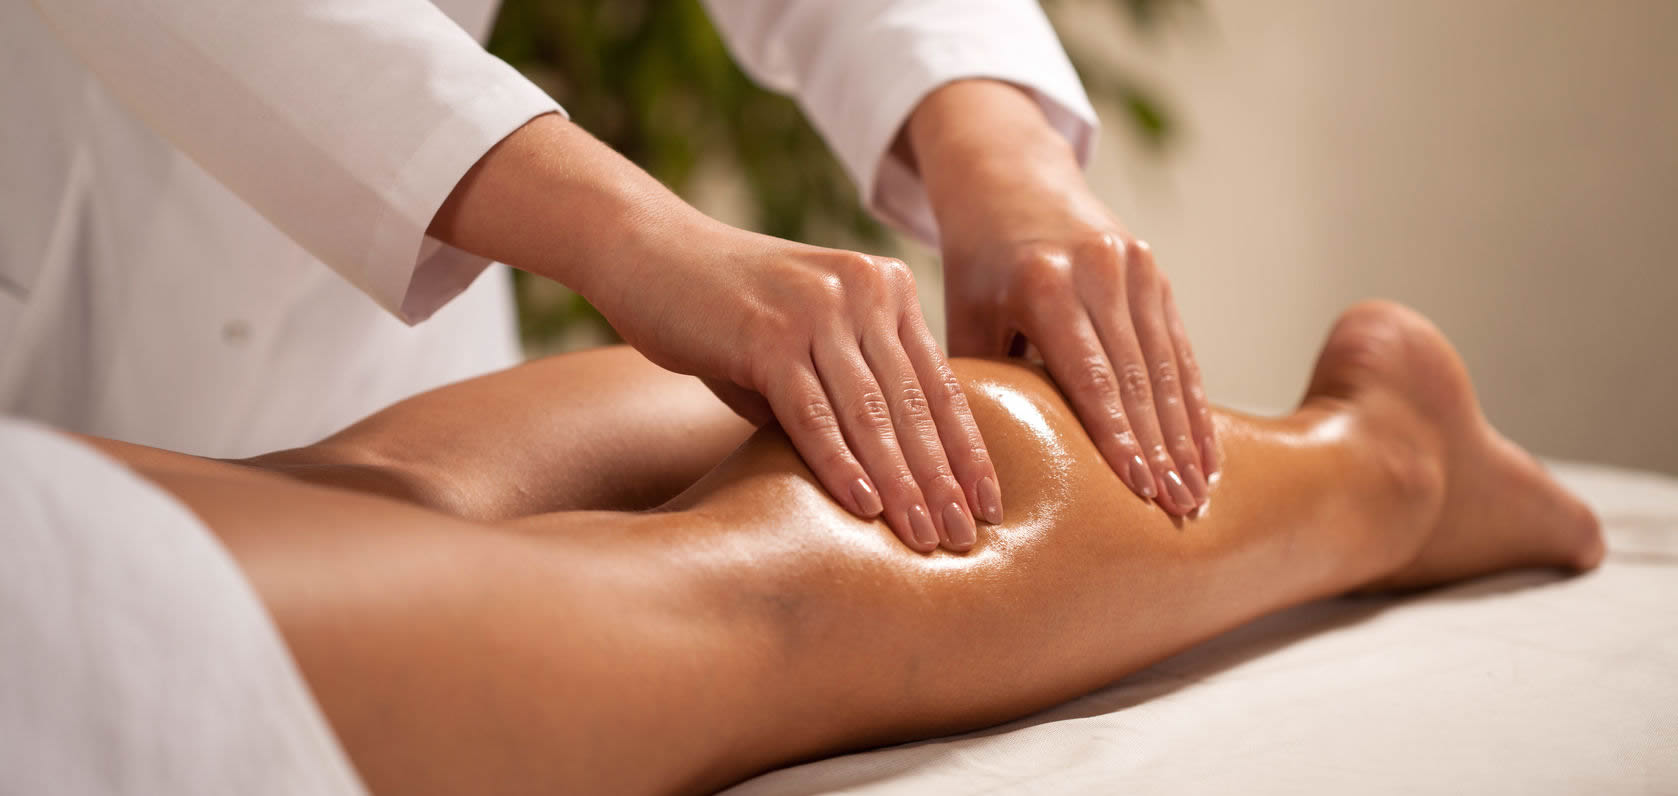 Adipose Cellulite: Kneading is the adequate Anti-cellulite massage technique